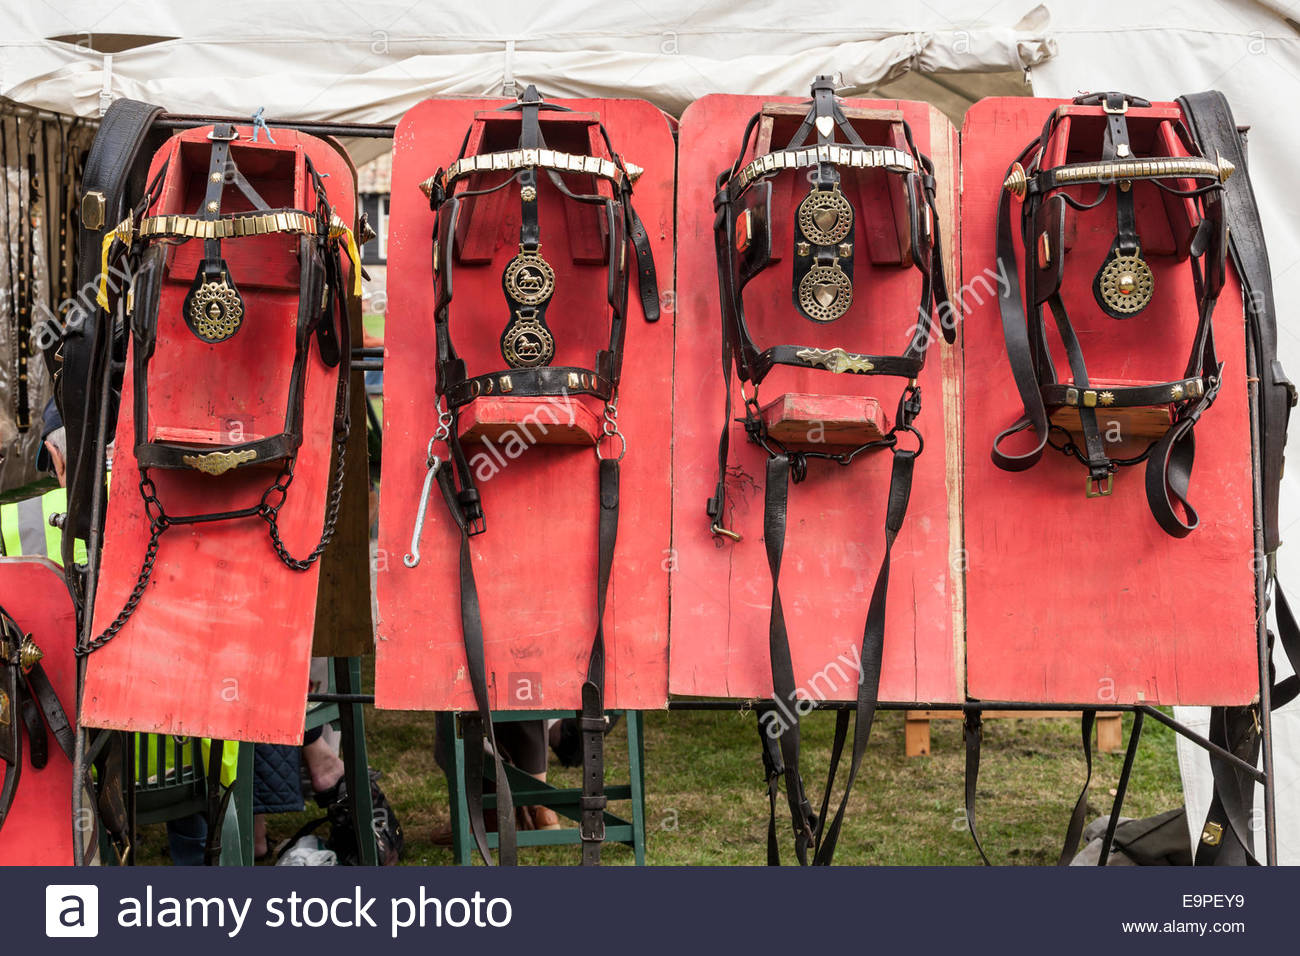 Horse harness display - Stock Image